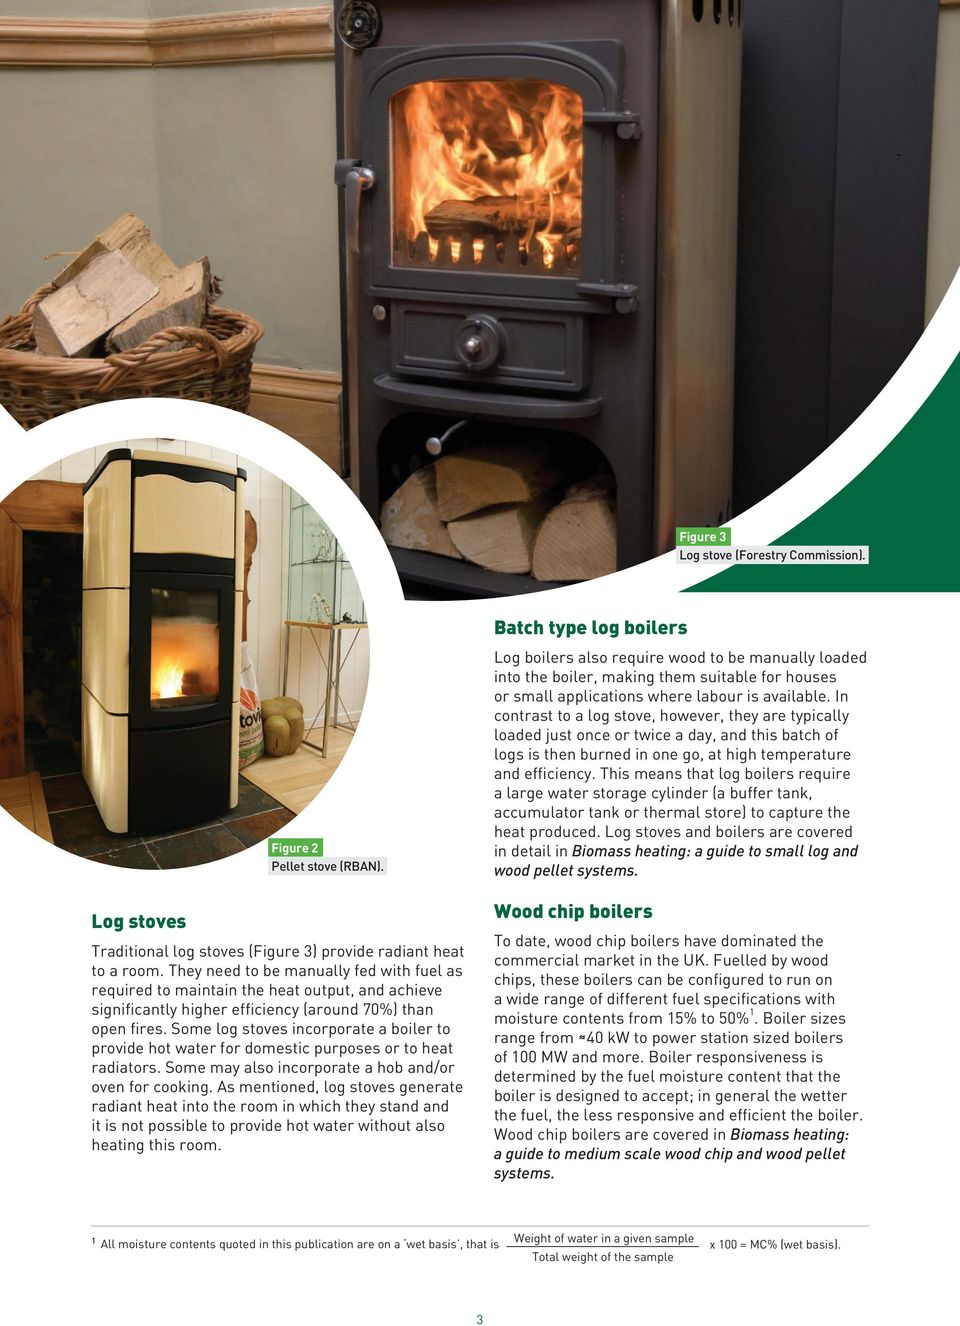 Some log stoves incorporate a boiler to provide hot water for domestic purposes or to heat radiators. Some may also incorporate a hob and/or oven for cooking.